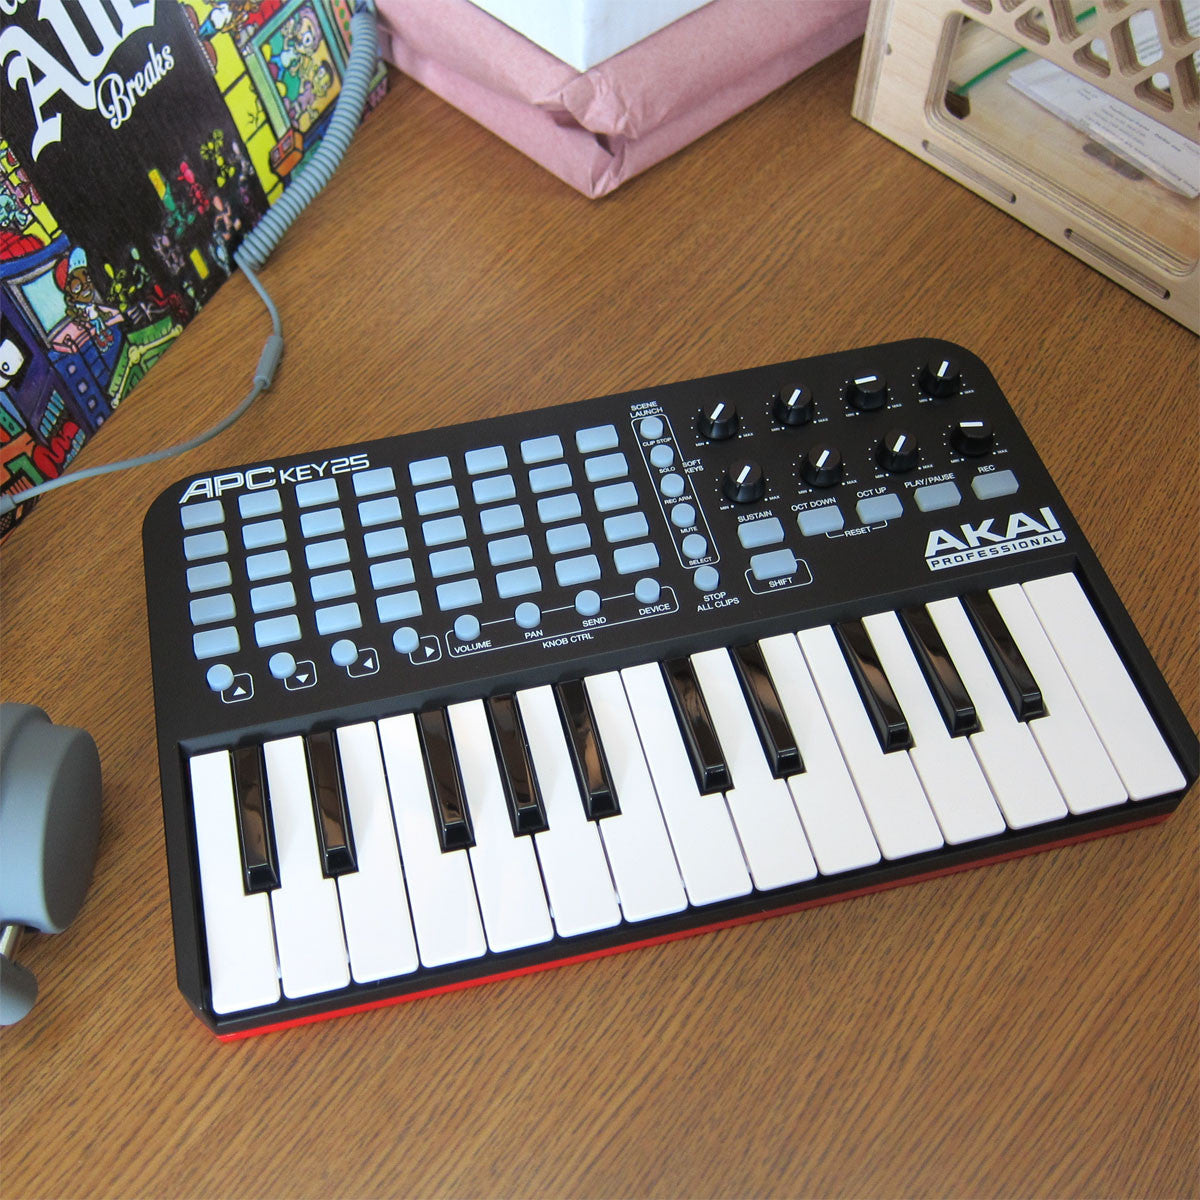 Akai: APC Key 25 Ableton Live Controller with Keyboard candid